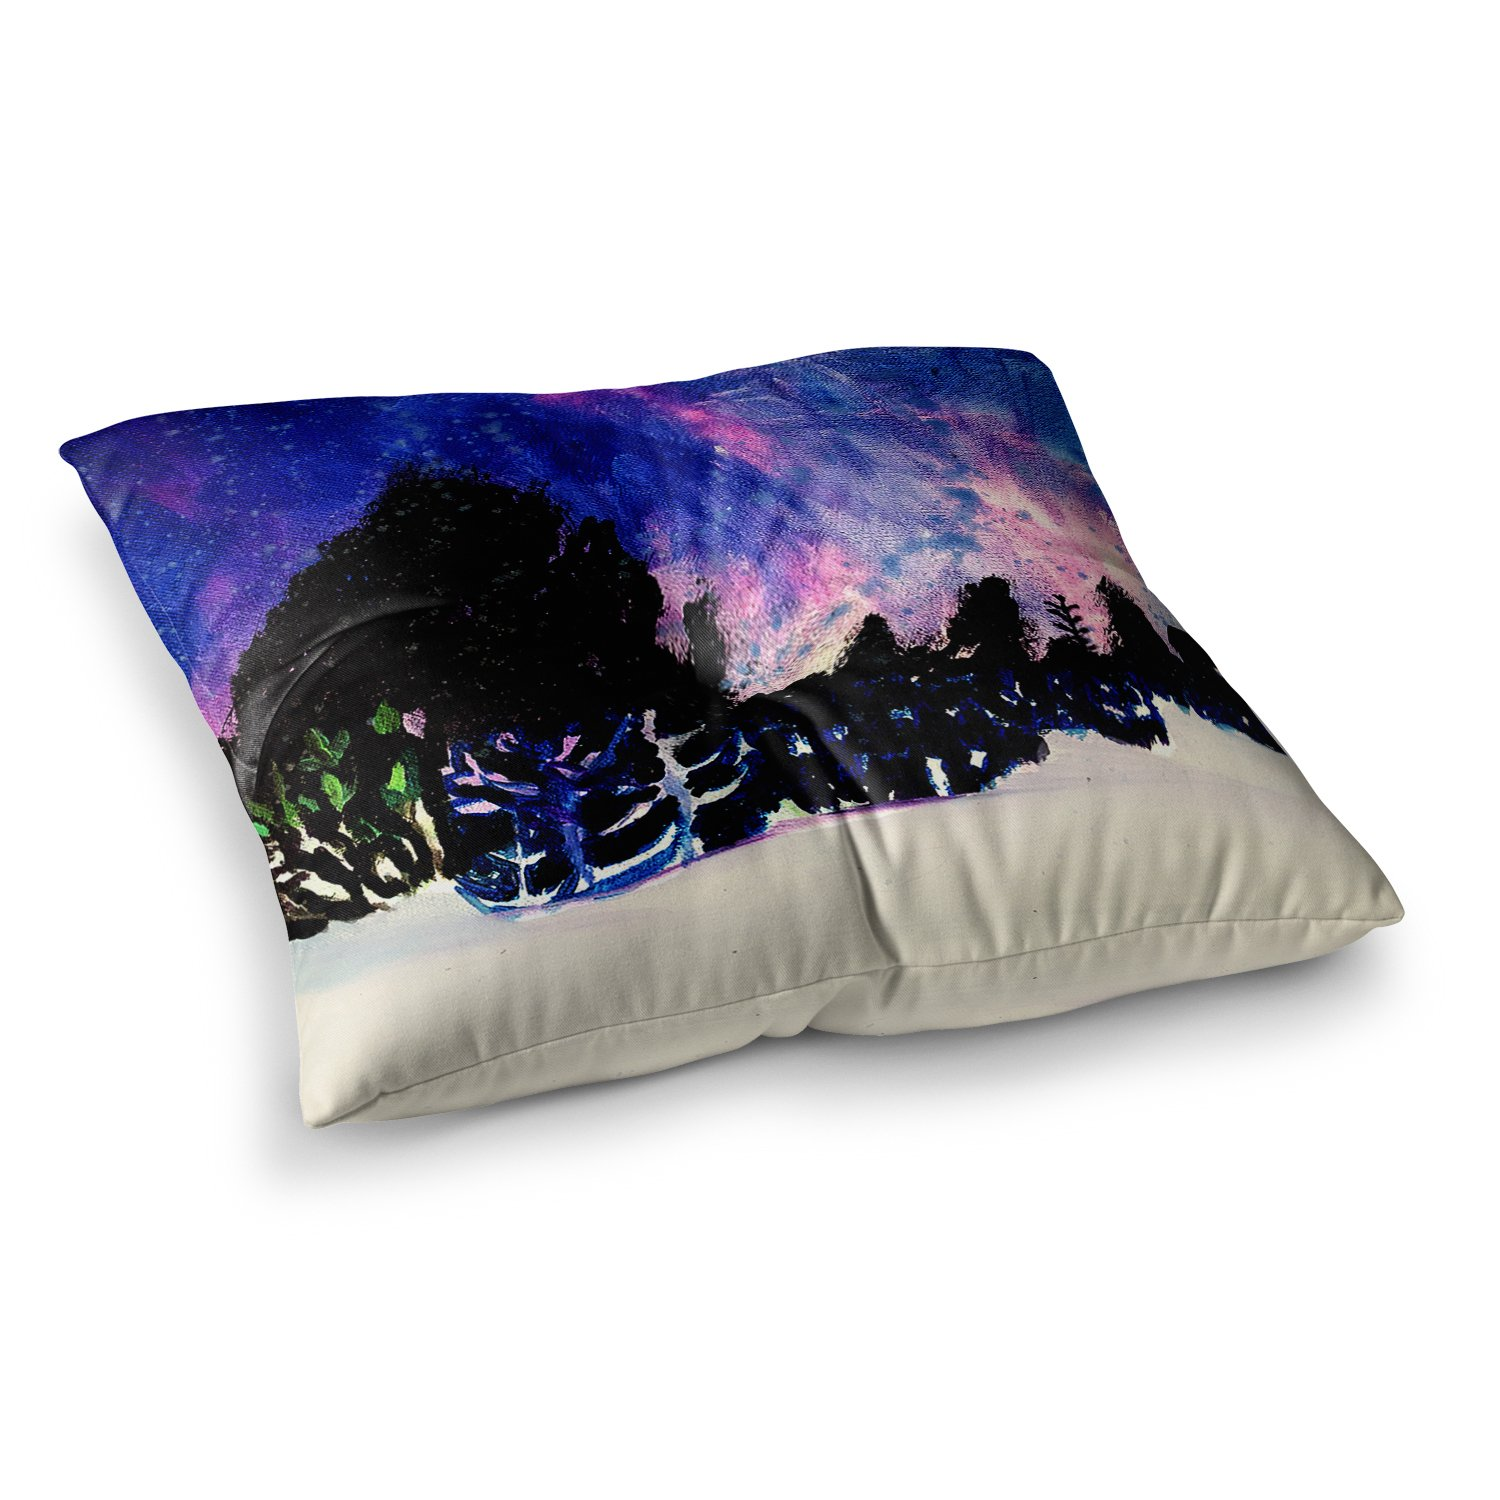 Kess InHouse Theresa Giolzetti First Snow Purple Blue, 23' x 23' Square Floor Pillow